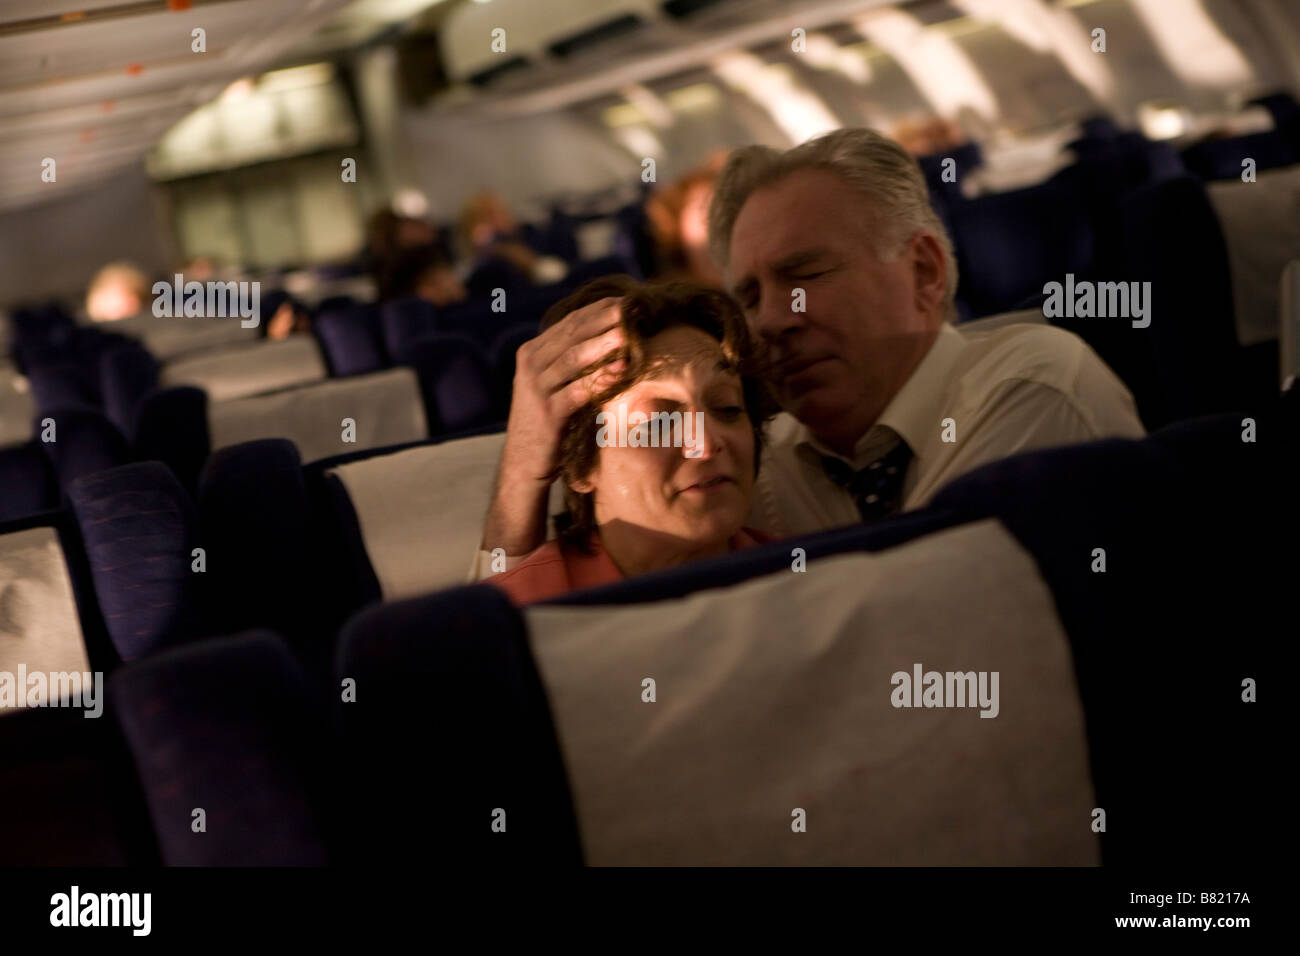 United 93  Year 2006 USA Becky London, Tom O'Rourke  Director: Paul Greengrass - Stock Image